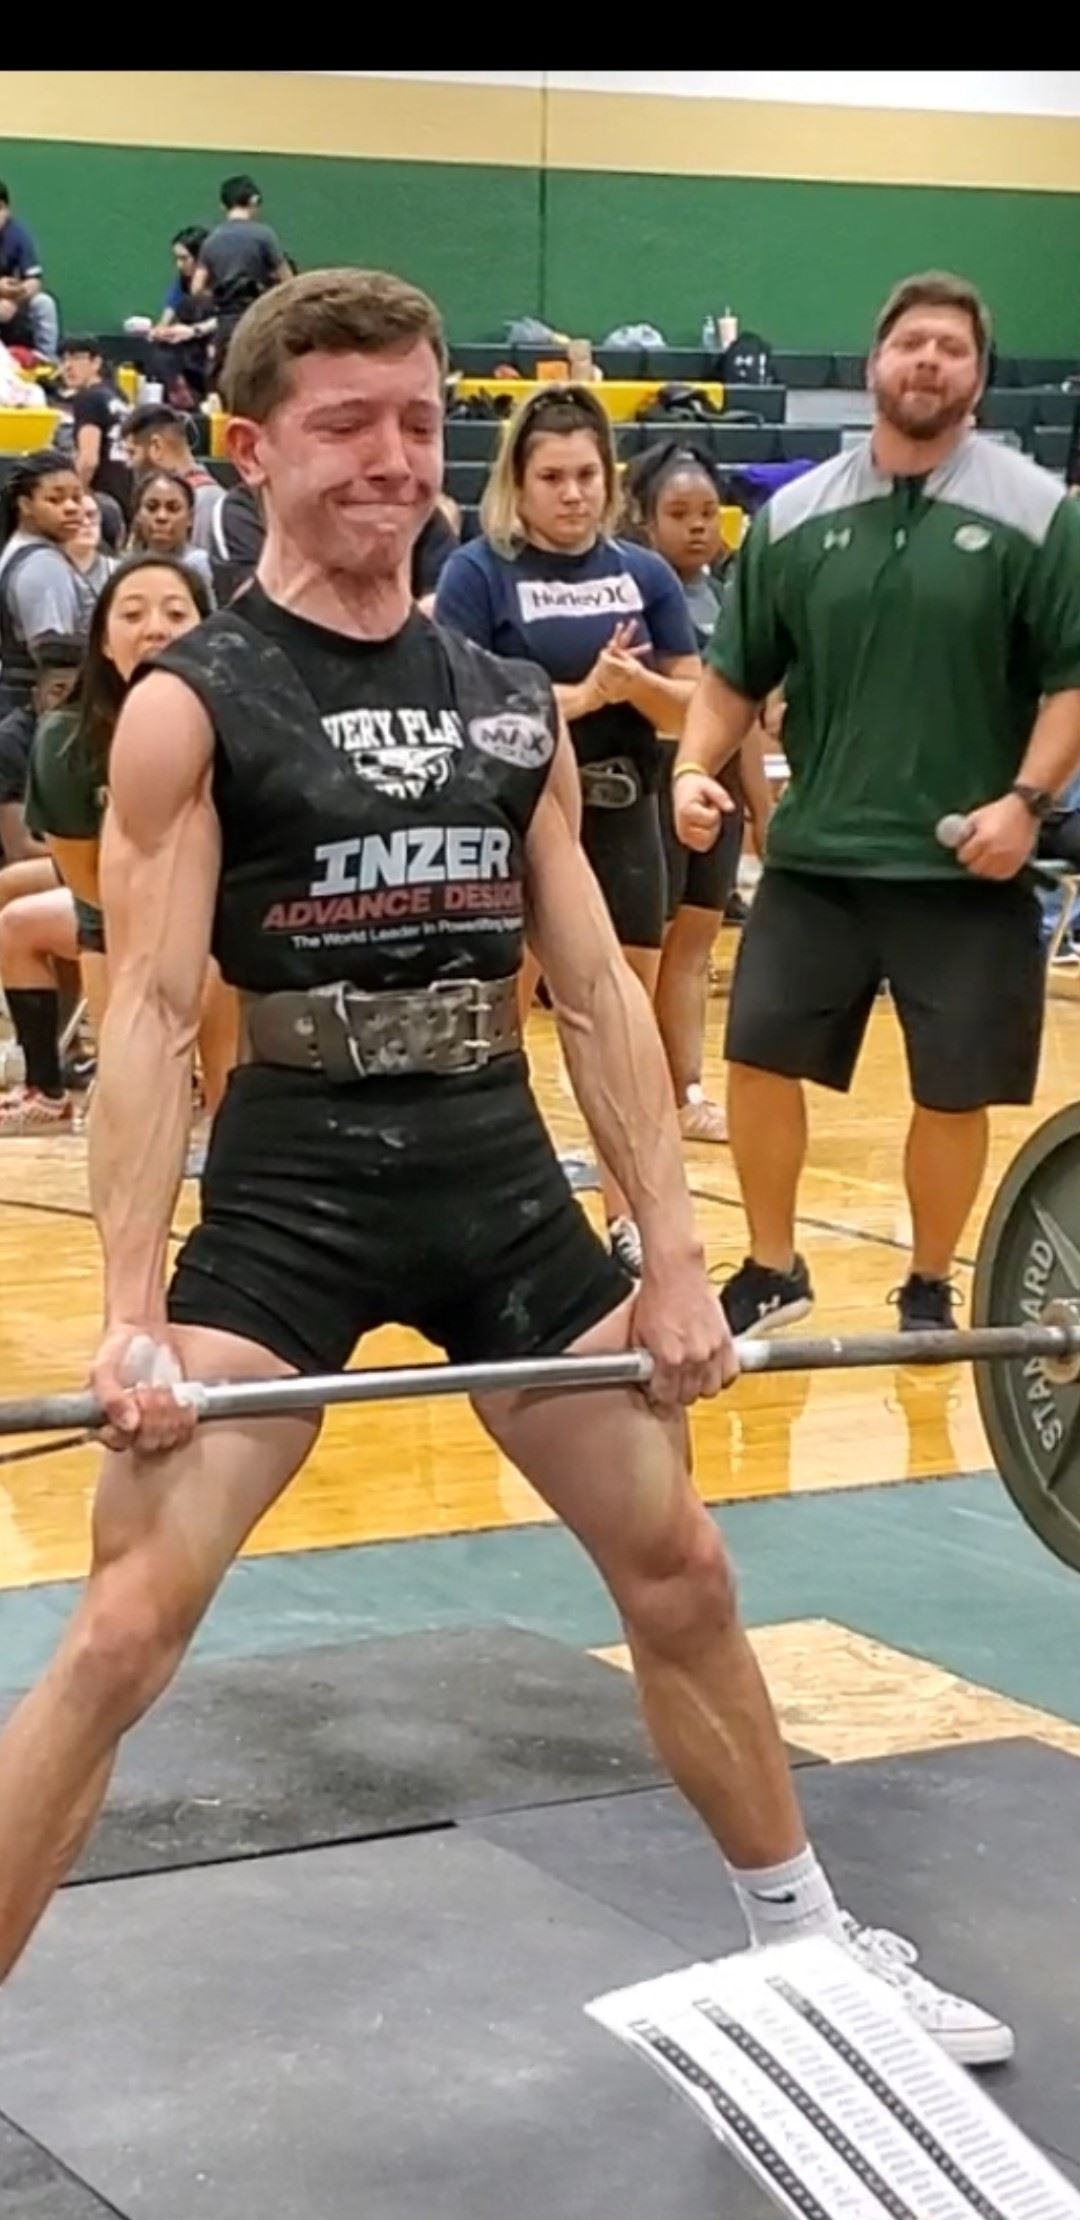 Jacob Cavness Deadlifting at the Santa Fe Meet